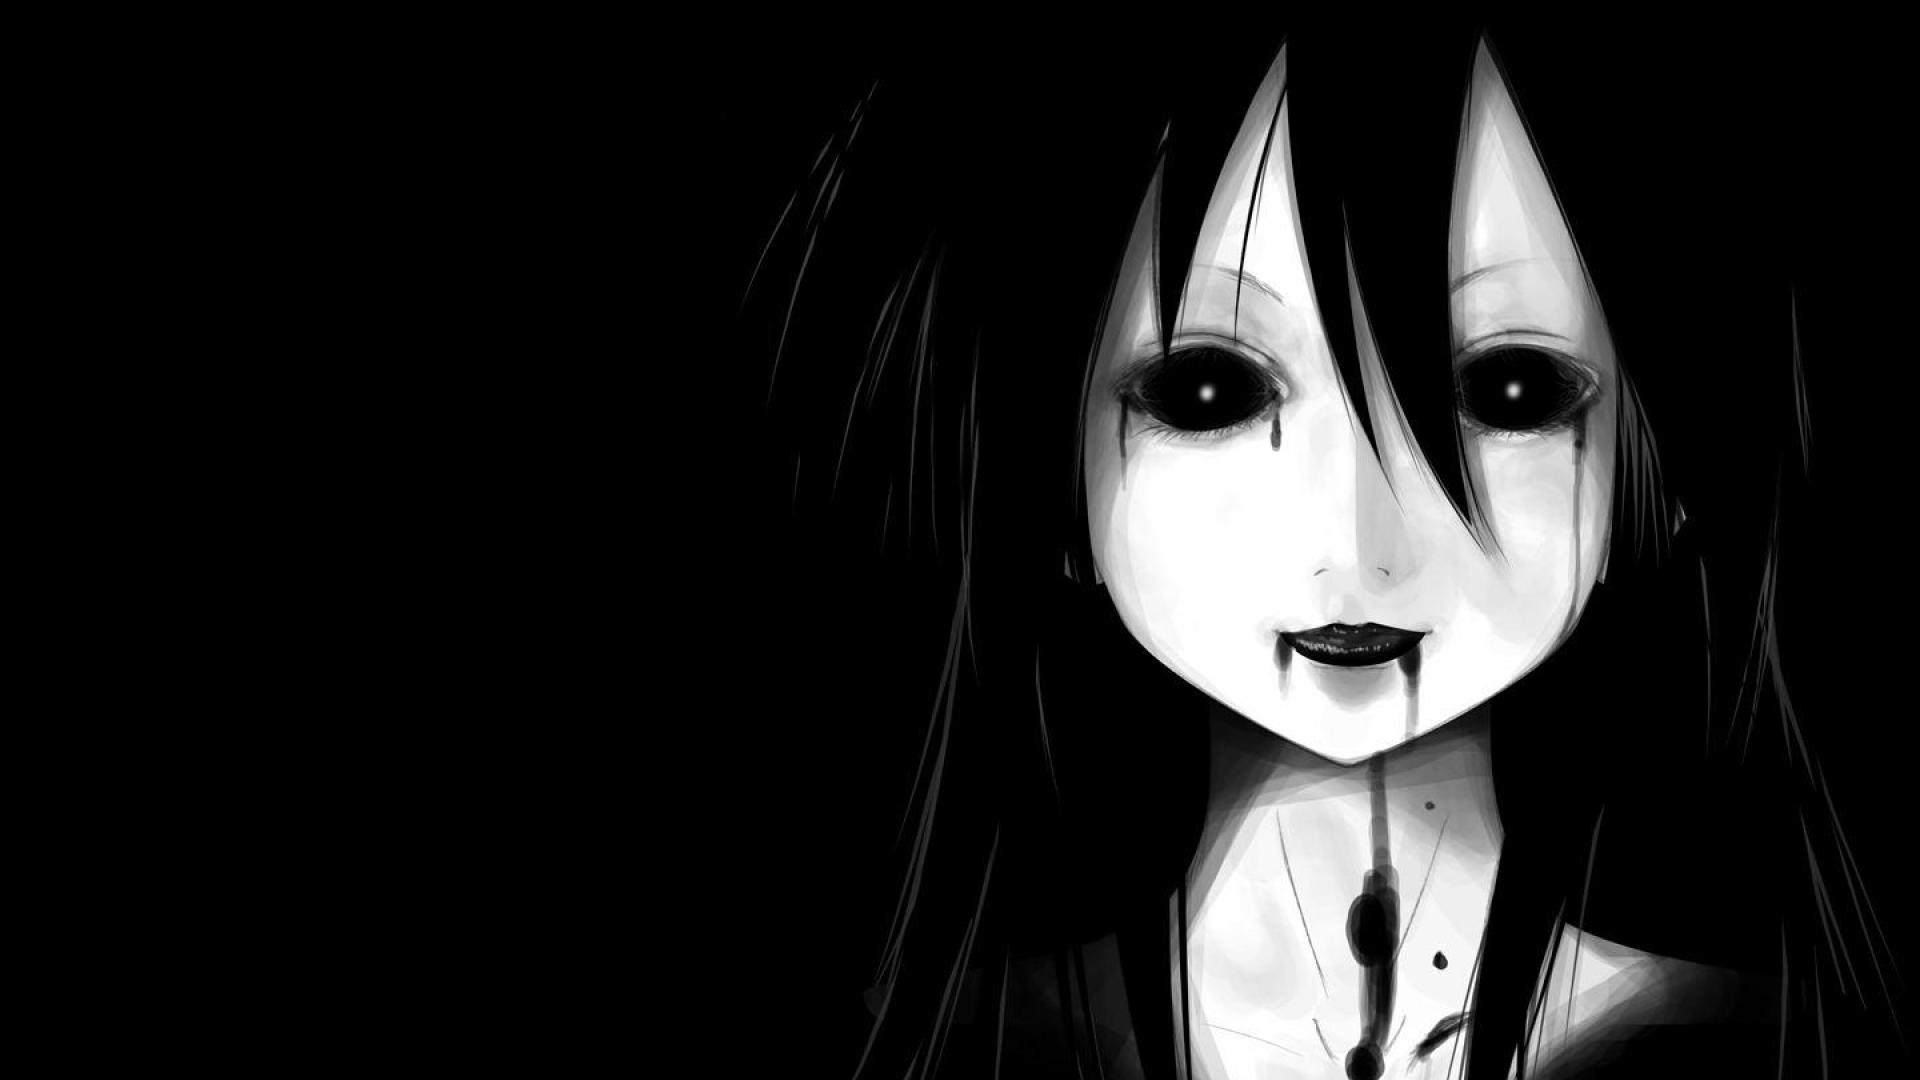 Manga Wallpaper Black And White